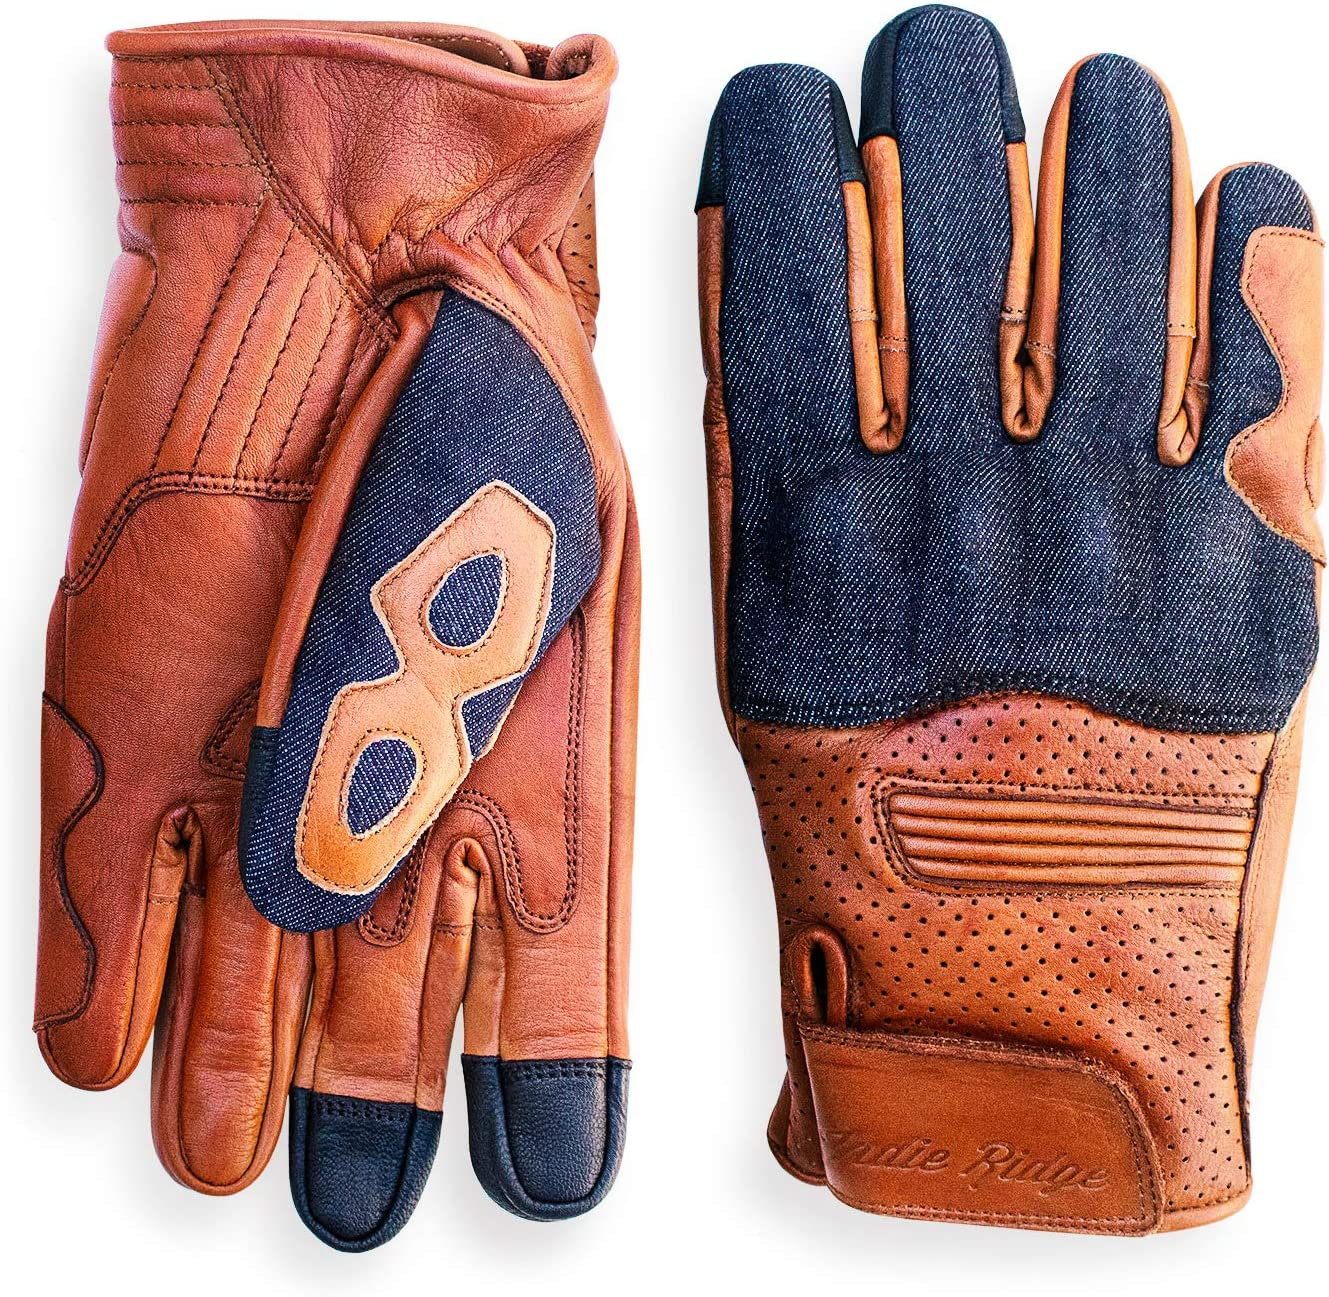 Camel Denim /& Leather Motorcycle Gloves X-Small With Mobile Touchscreen by Indie Ridge